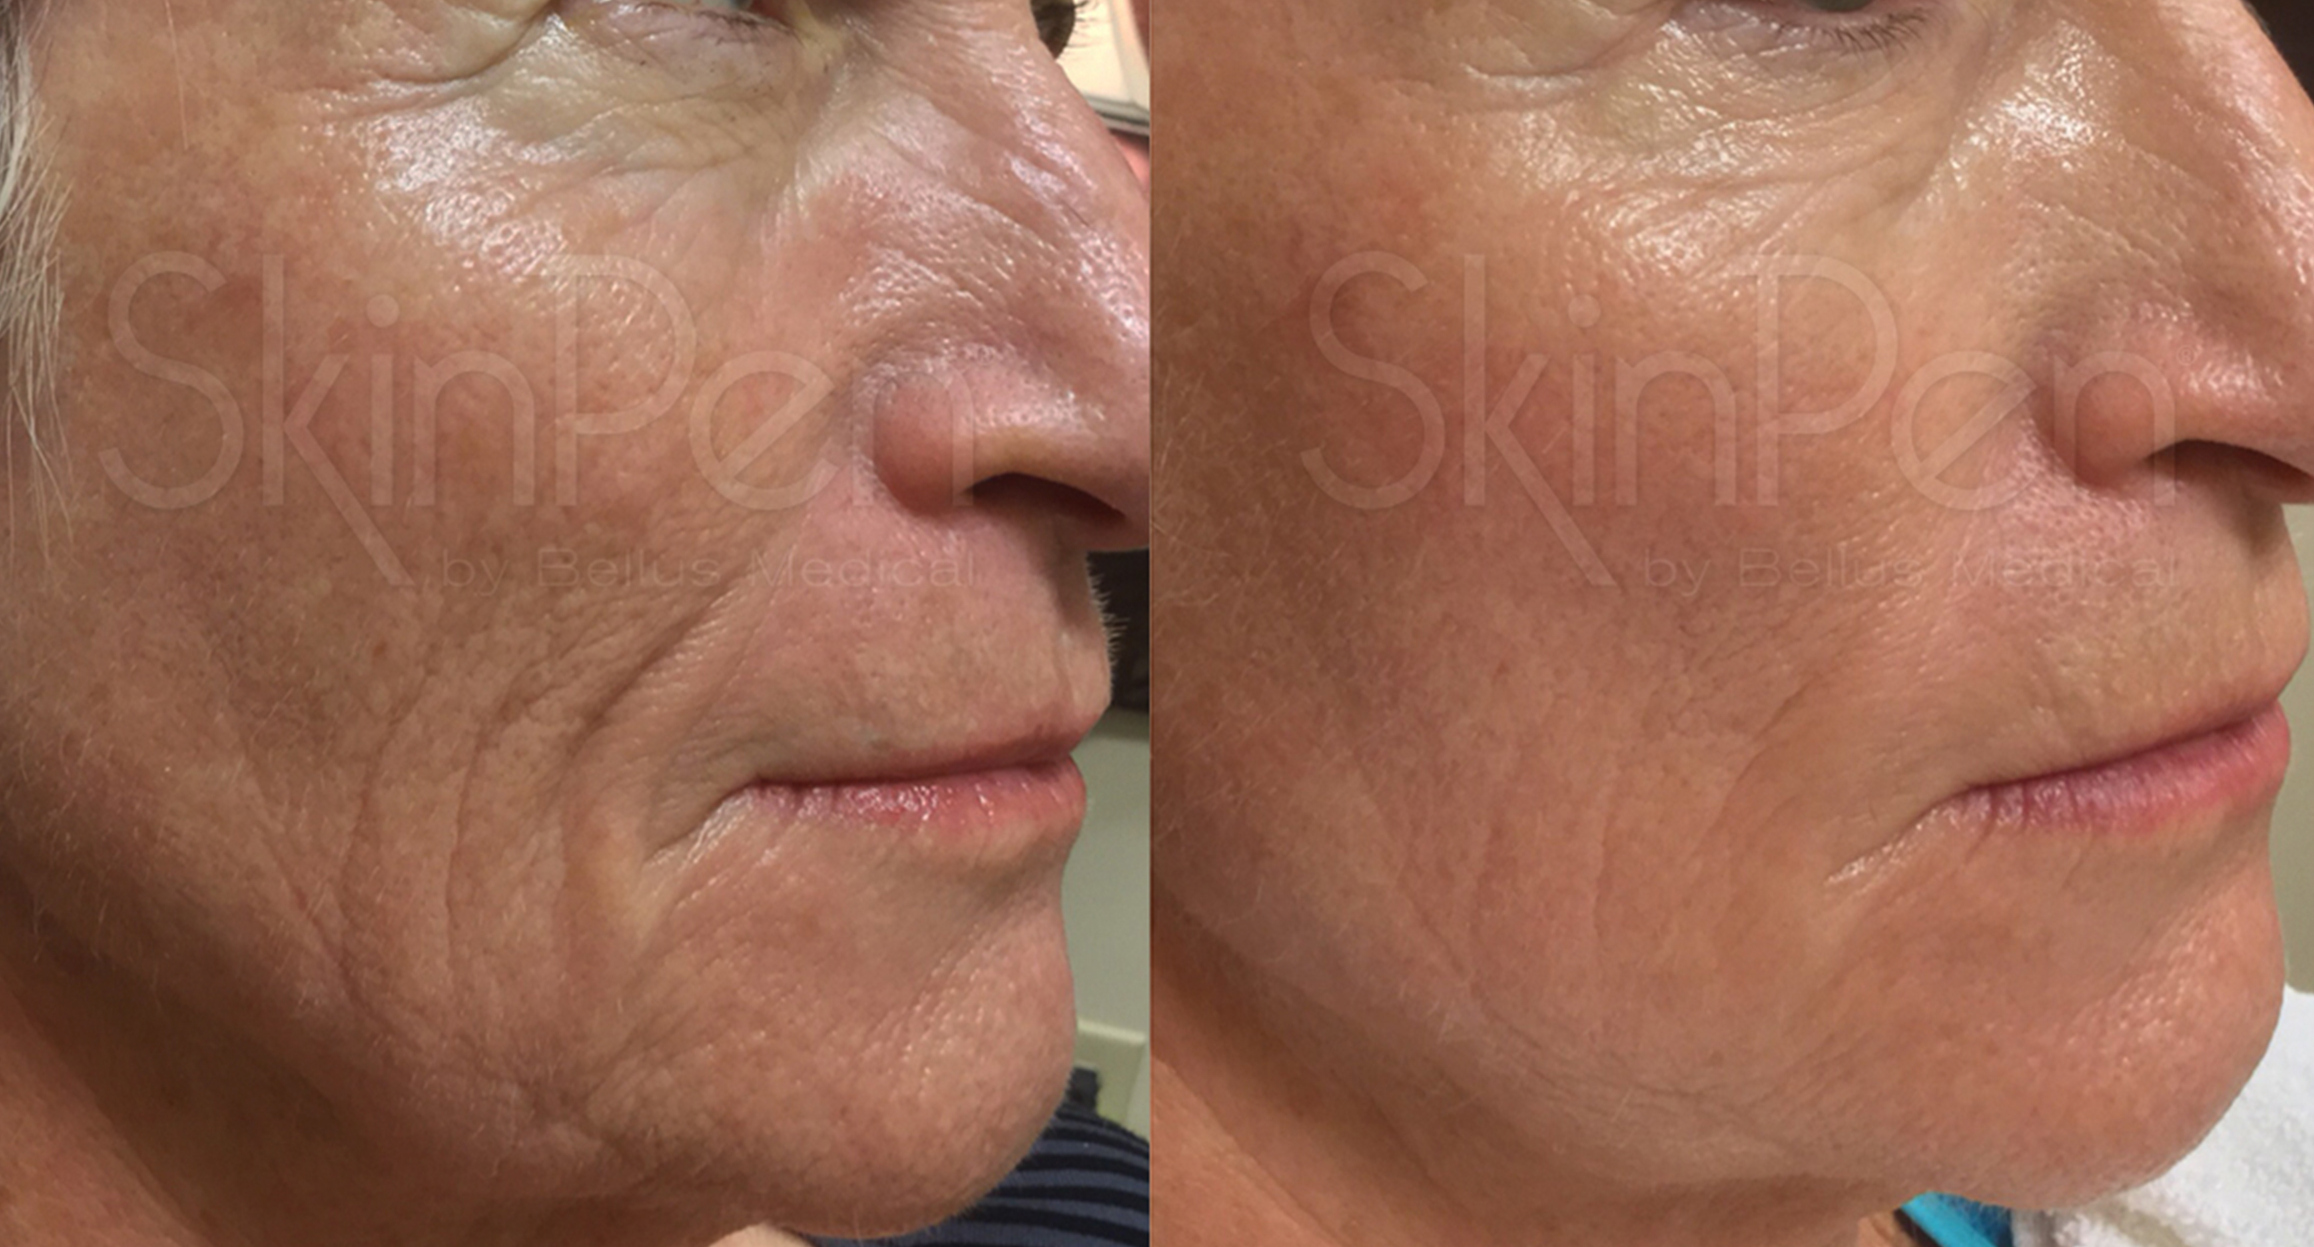 Before & After - 2 treatments